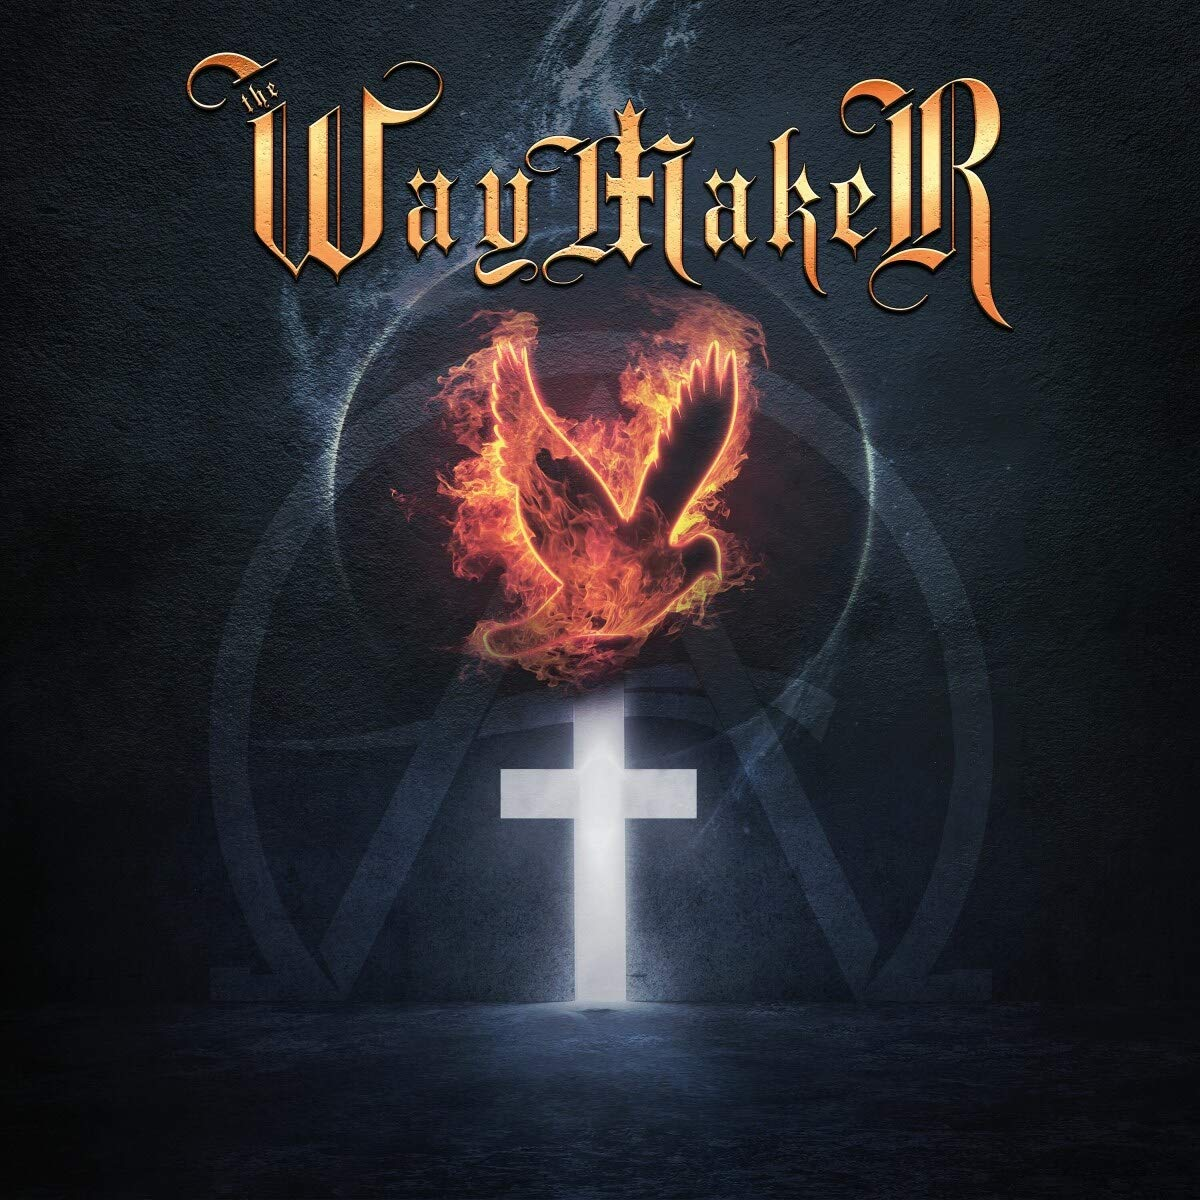 Waymaker - The Waymaker (Bonus Track) [Import]